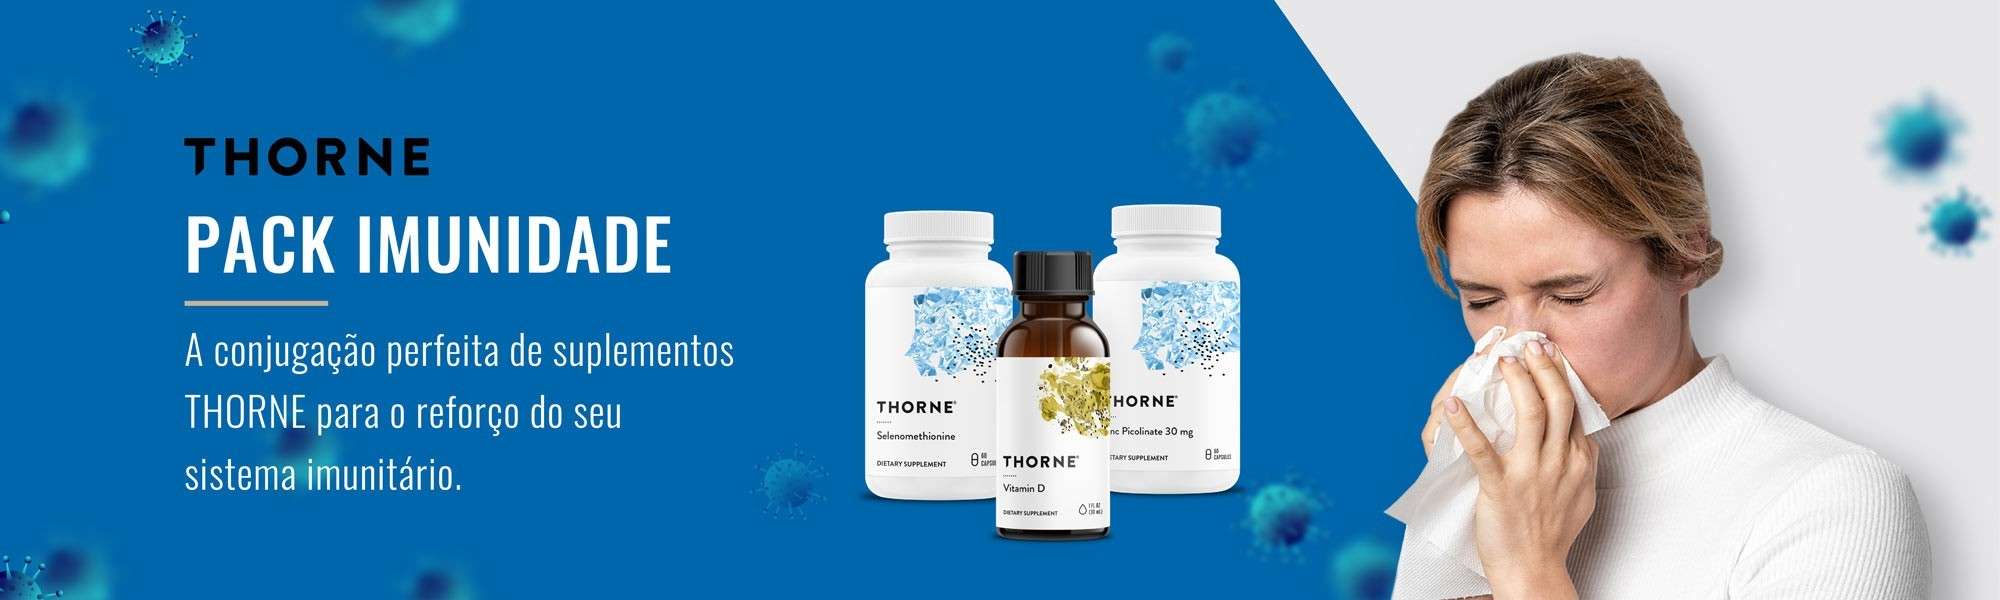 Pack Imunidade Thorne